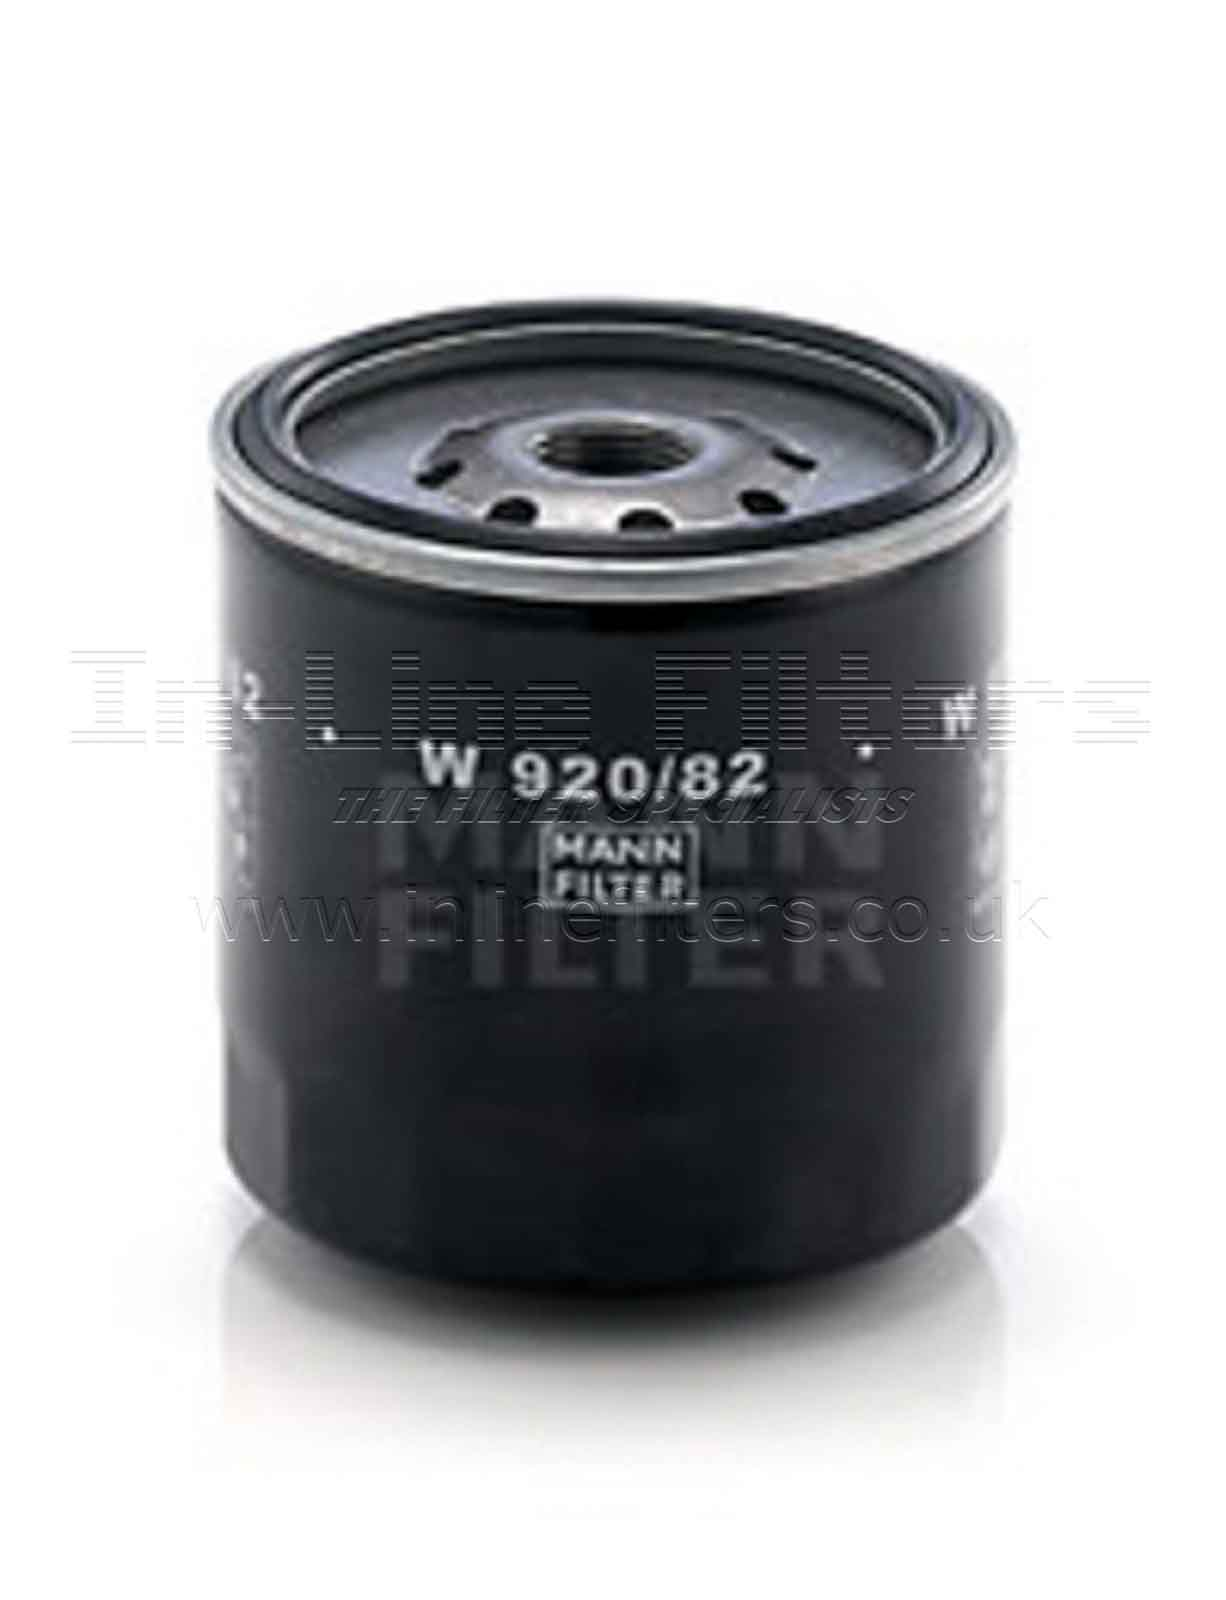 FMH-W920-82 FILTER-Lube(Brand Specific-Mann W920/82) - Click Image to Close